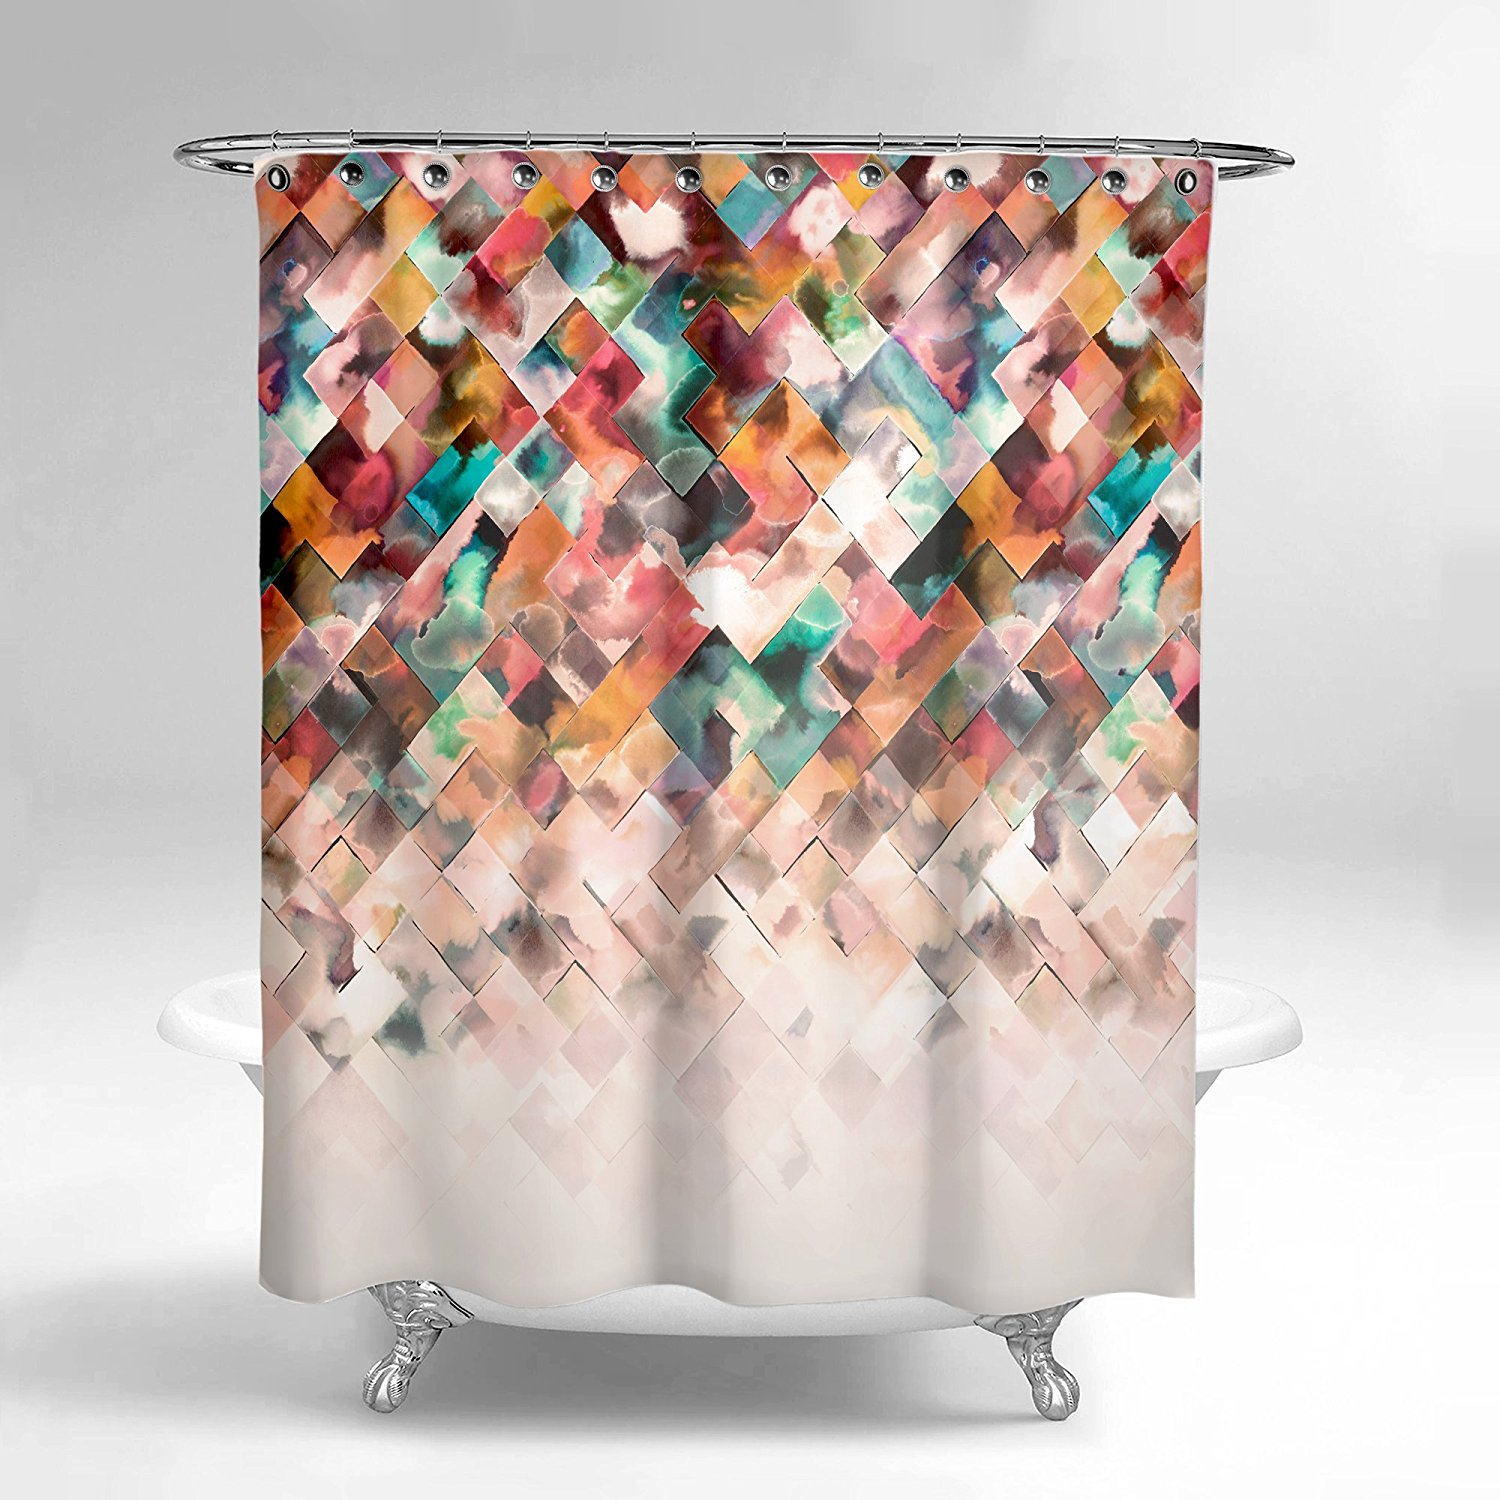 Cool Funny Shower Curtains For An Unique Bathroom Colorful